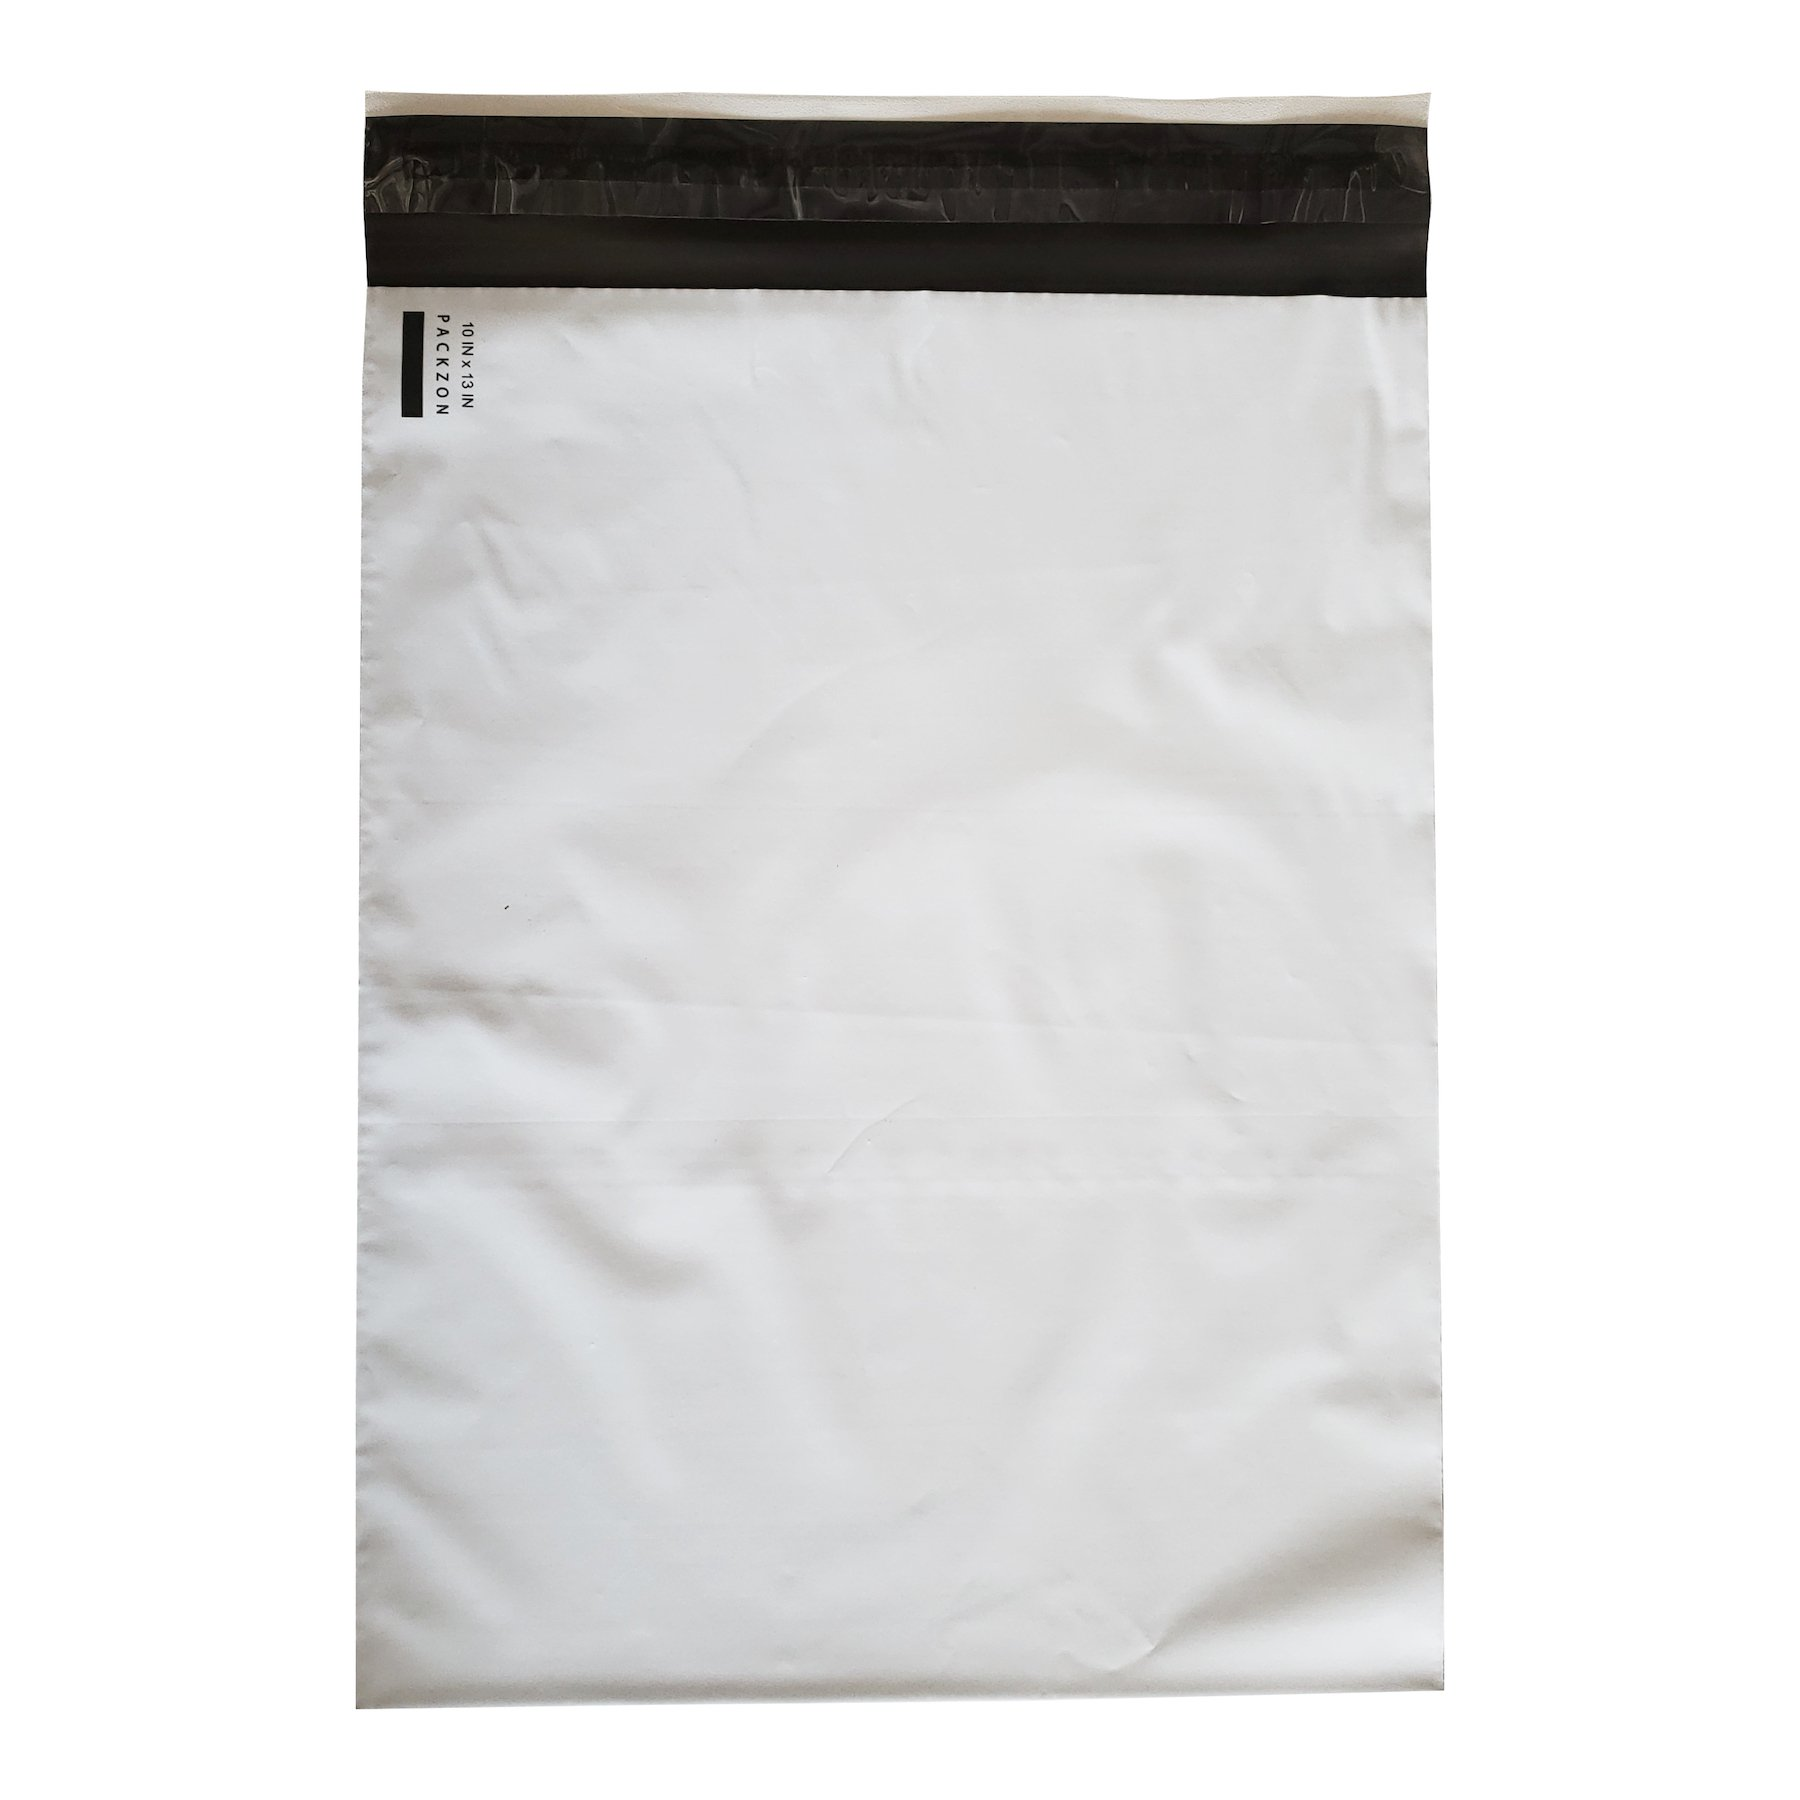 PACKZON Poly Mailers Shipping Envelopes Bags Self Sealing White 2 mil (10'' x 13'', 1000) by PACKZON